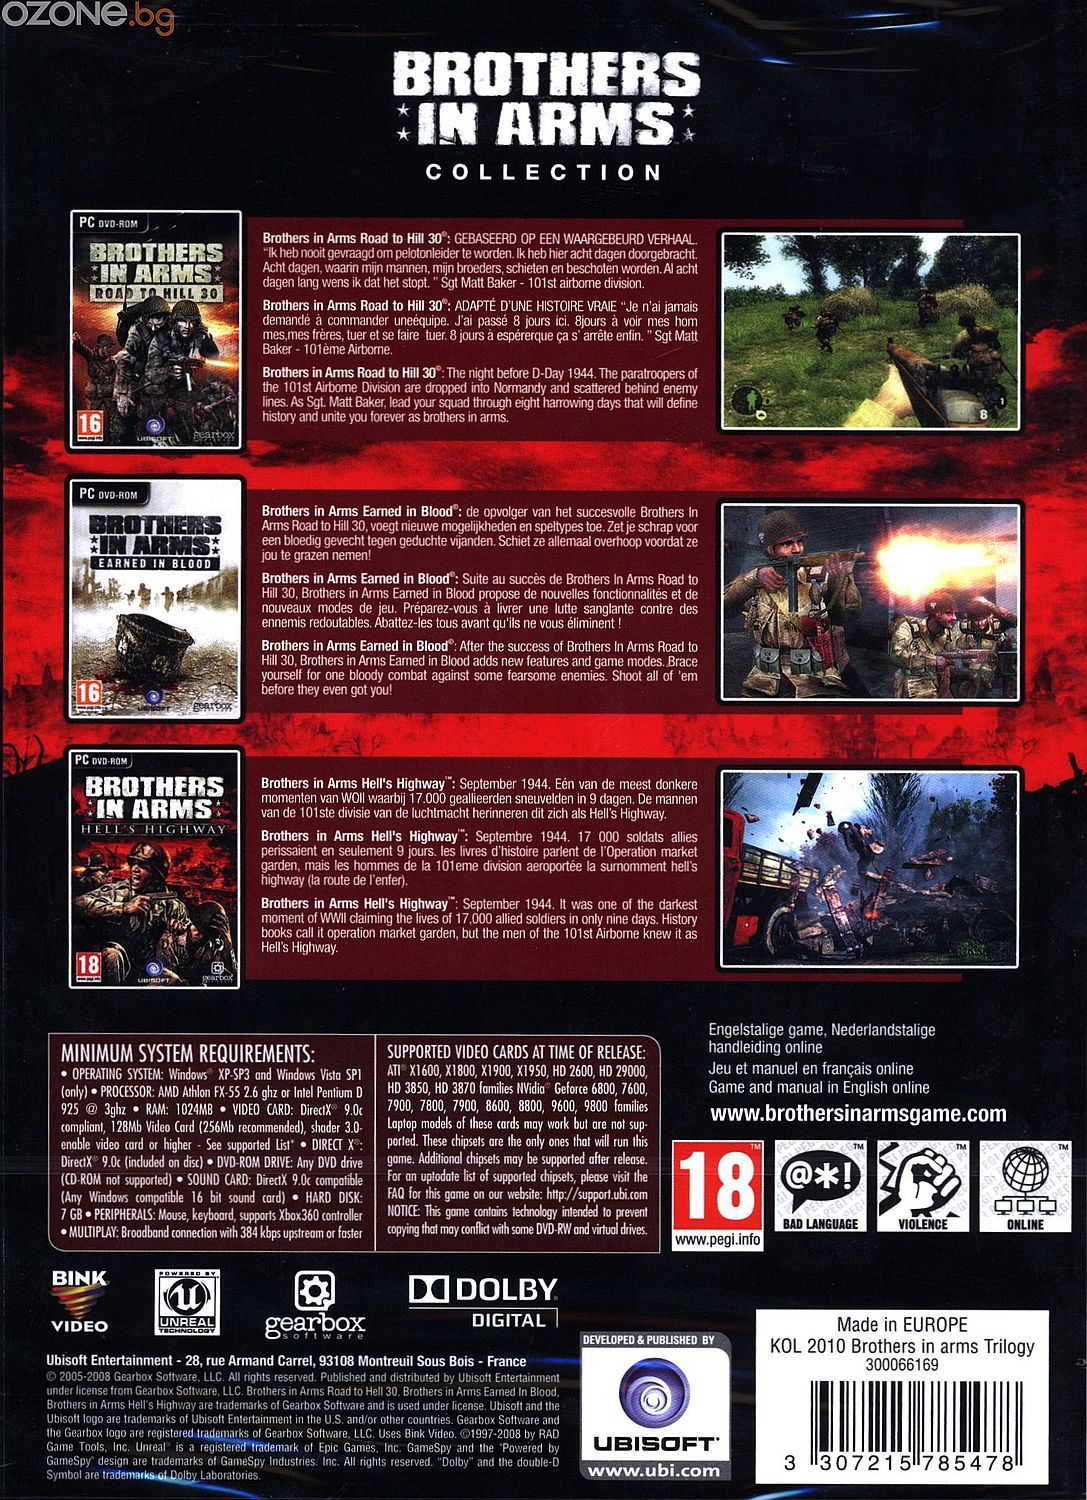 Brothers in Arms Collection (PC) - 6